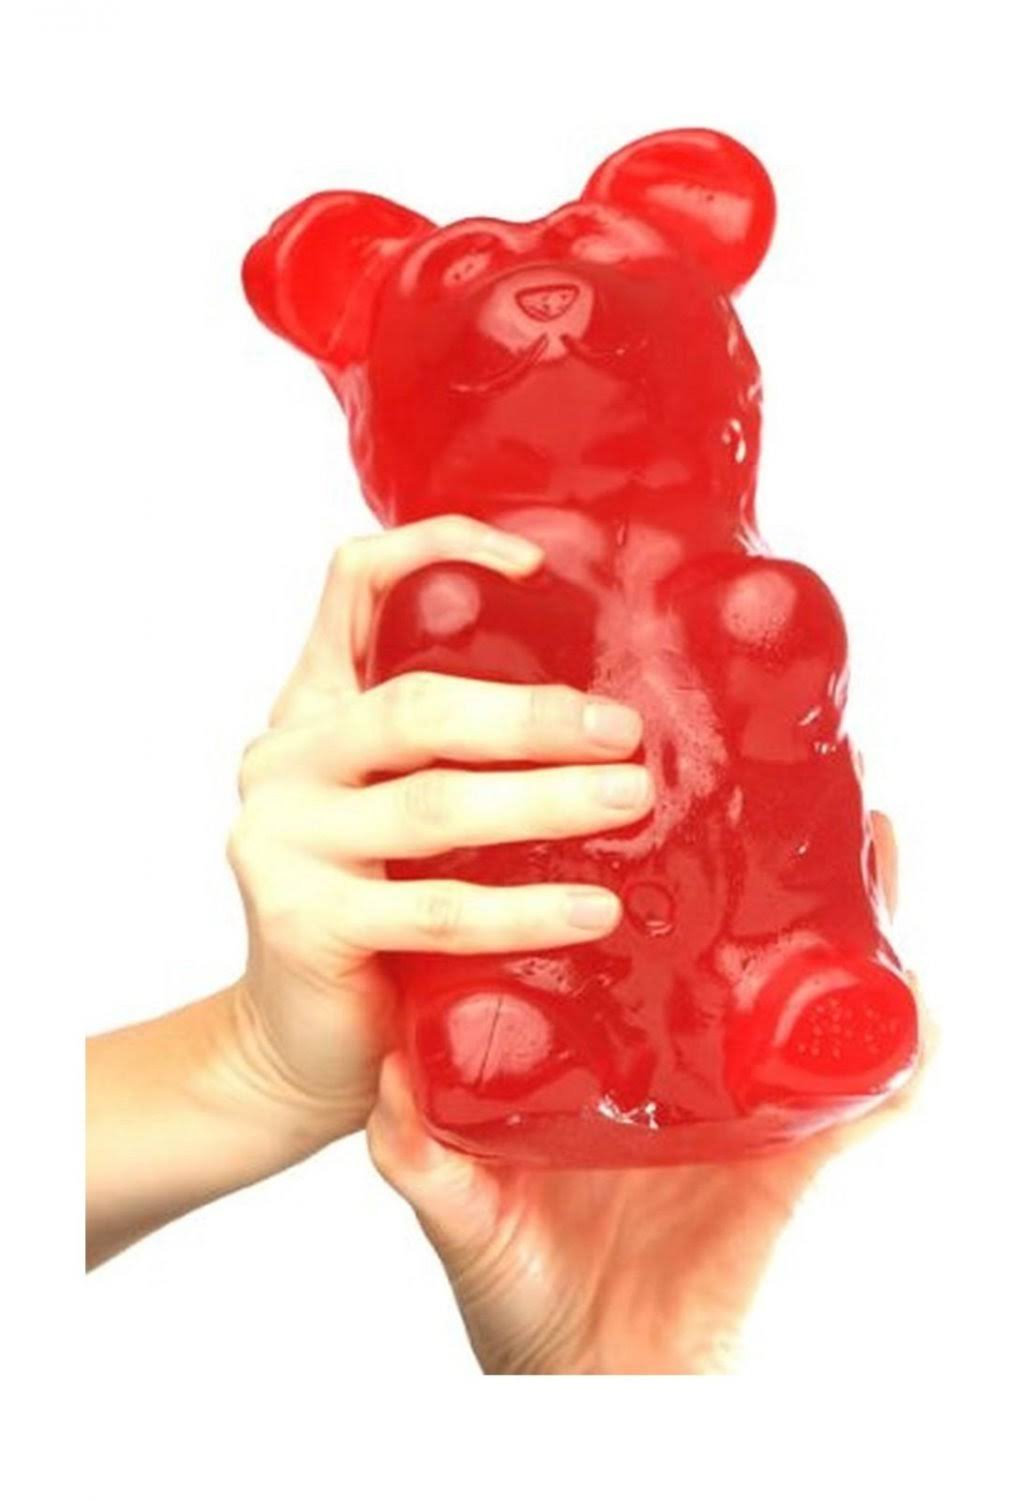 Giant Gummy Bear - 5lbs, Cherry Flavored